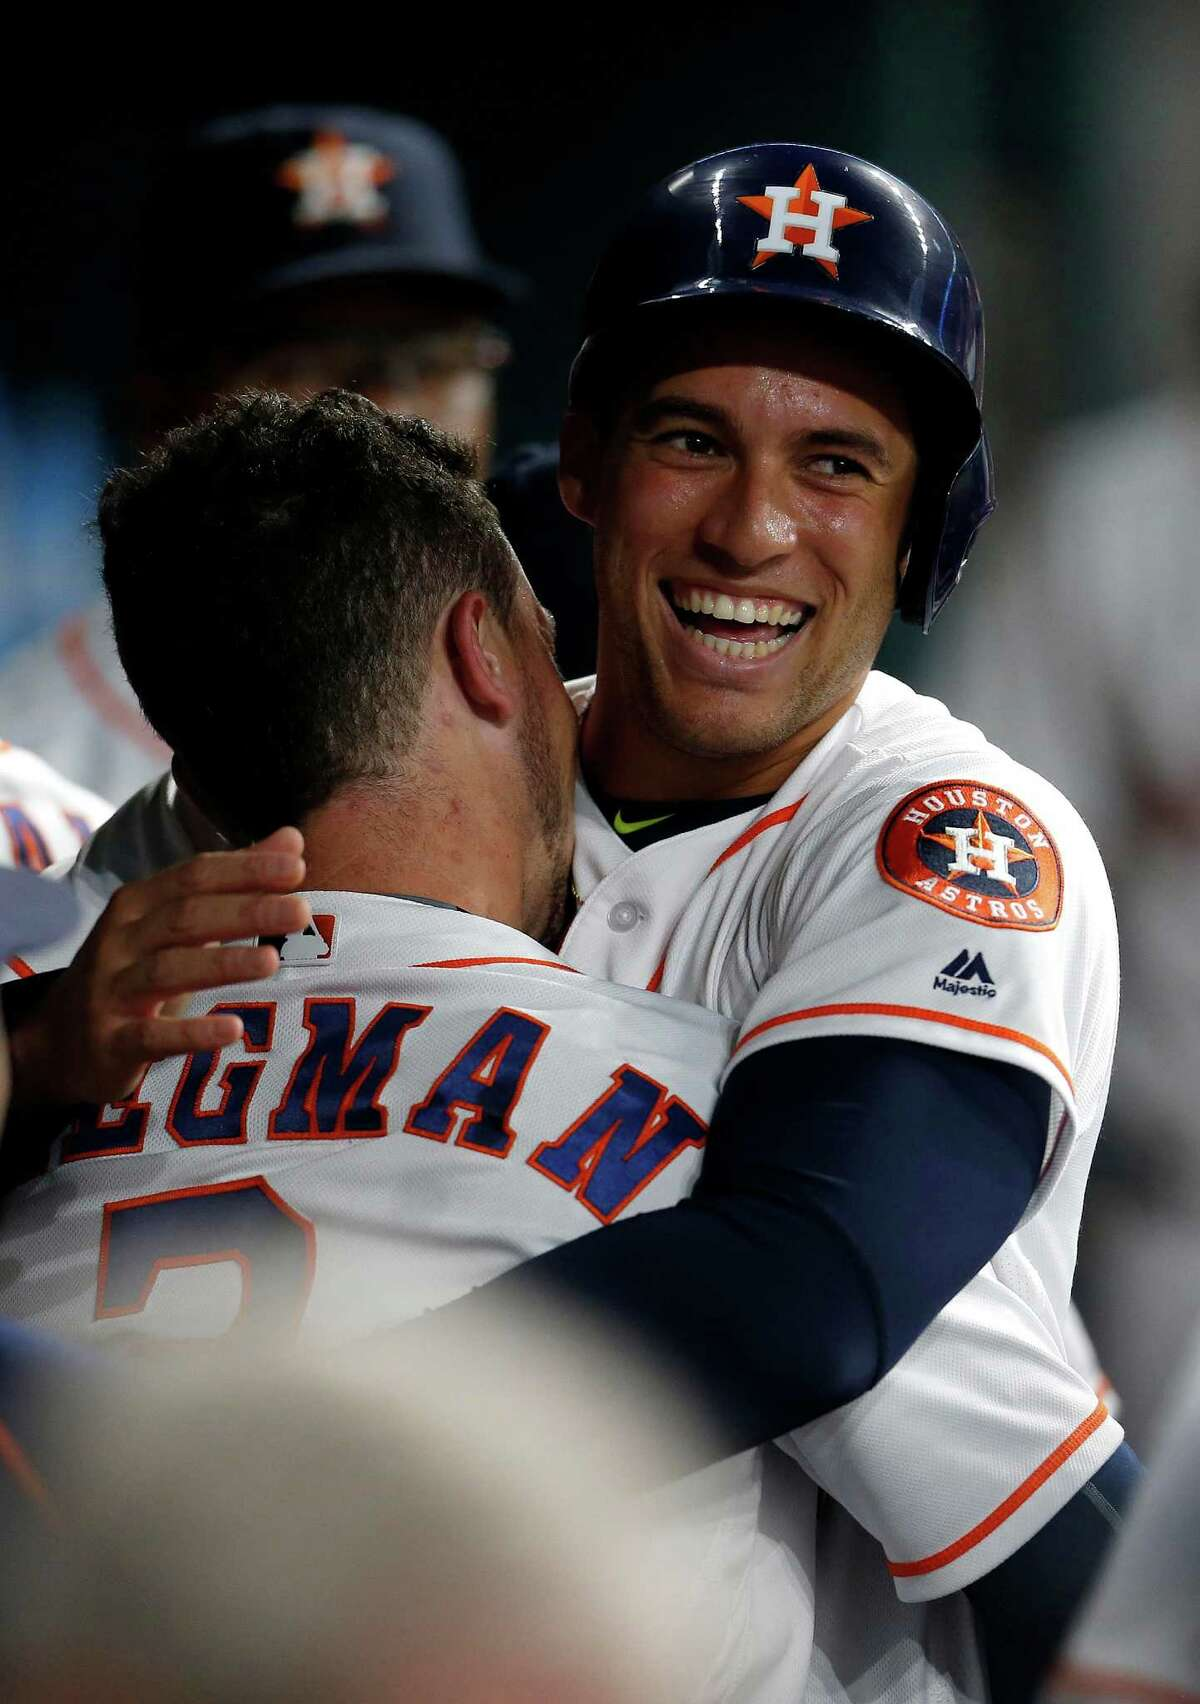 Houston Astros third baseman Alex Bregman (2) celebrates with George Springer (4) after hitting his first major league home run during the first inning of an MLB game at Minute Maid Park,Tuesday, Aug. 16, 2016, in Houston.